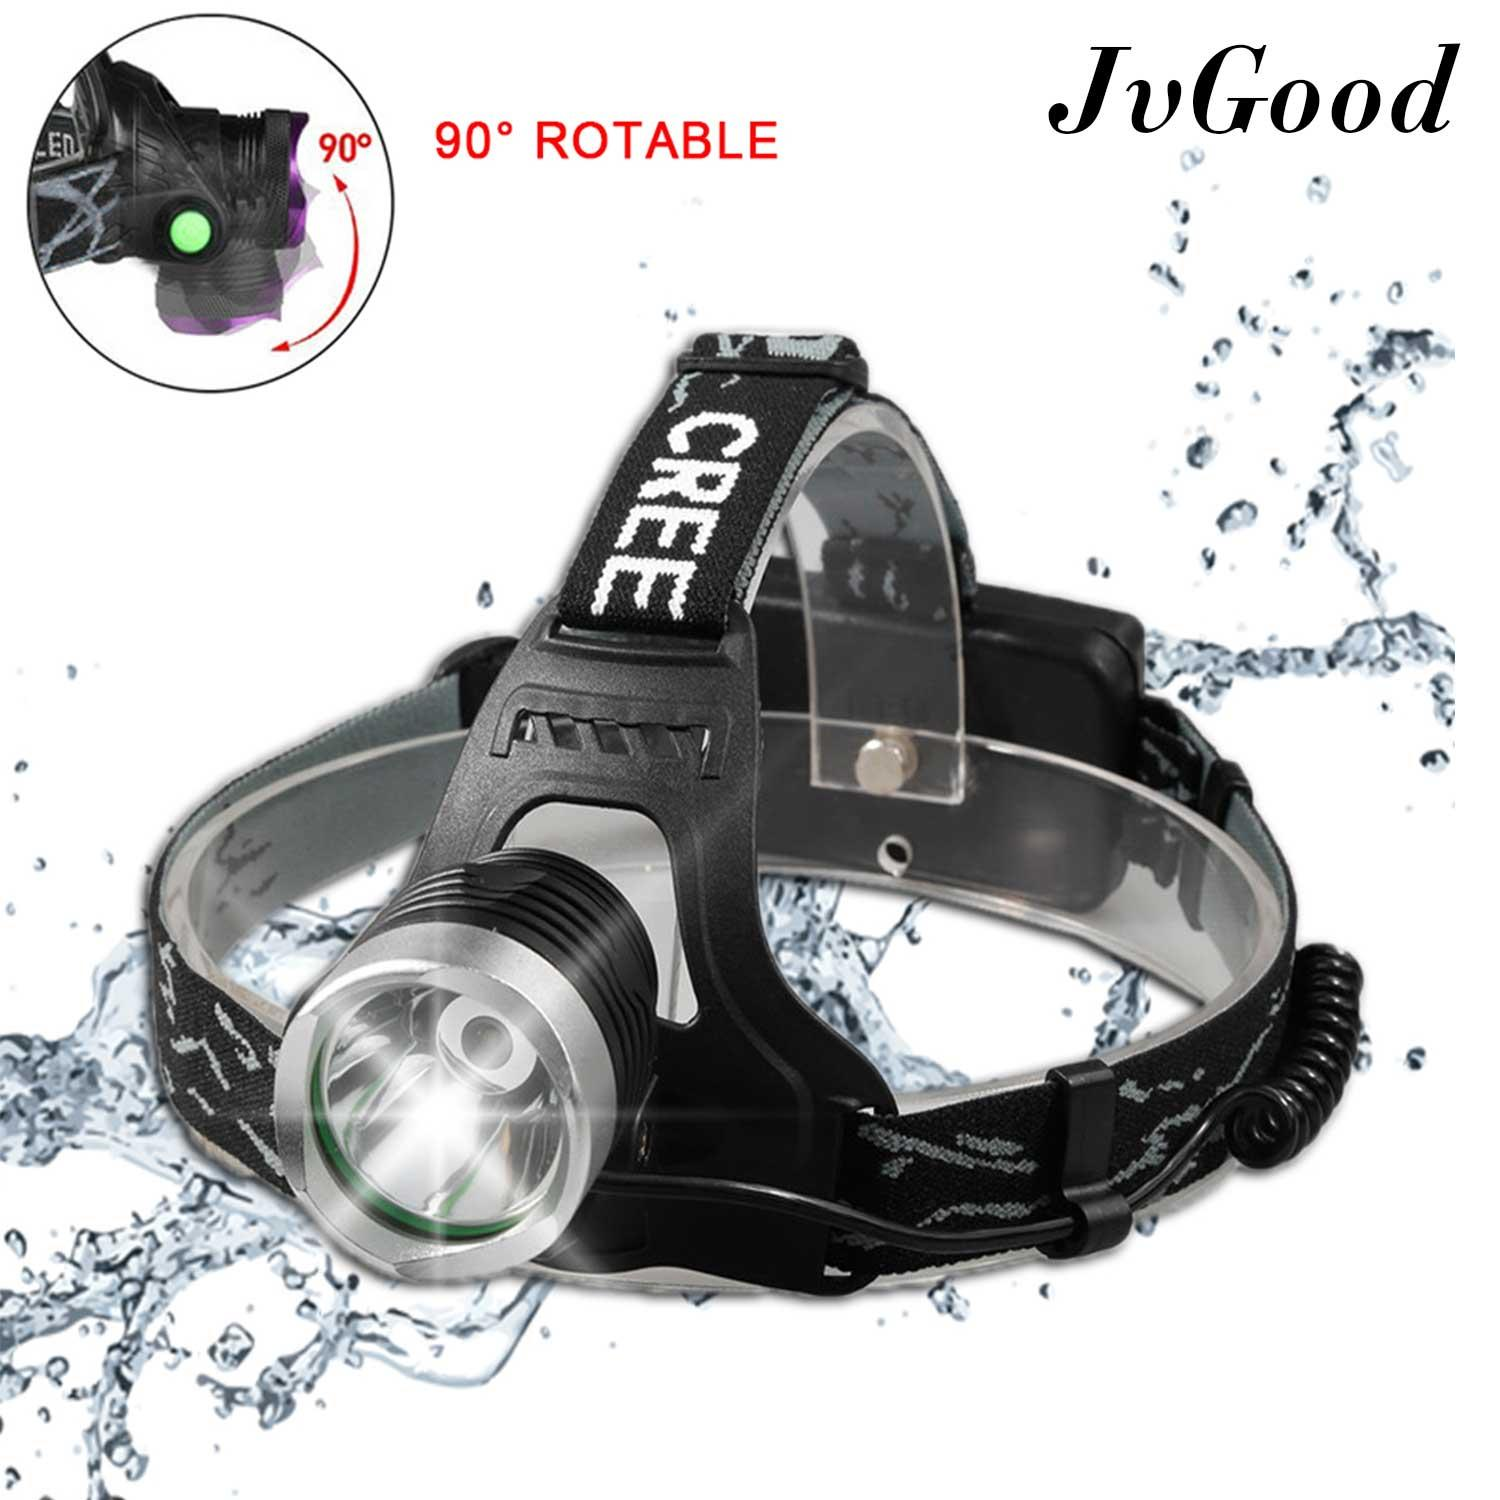 JvGood Philippines - JvGood Headlamps for sale - prices